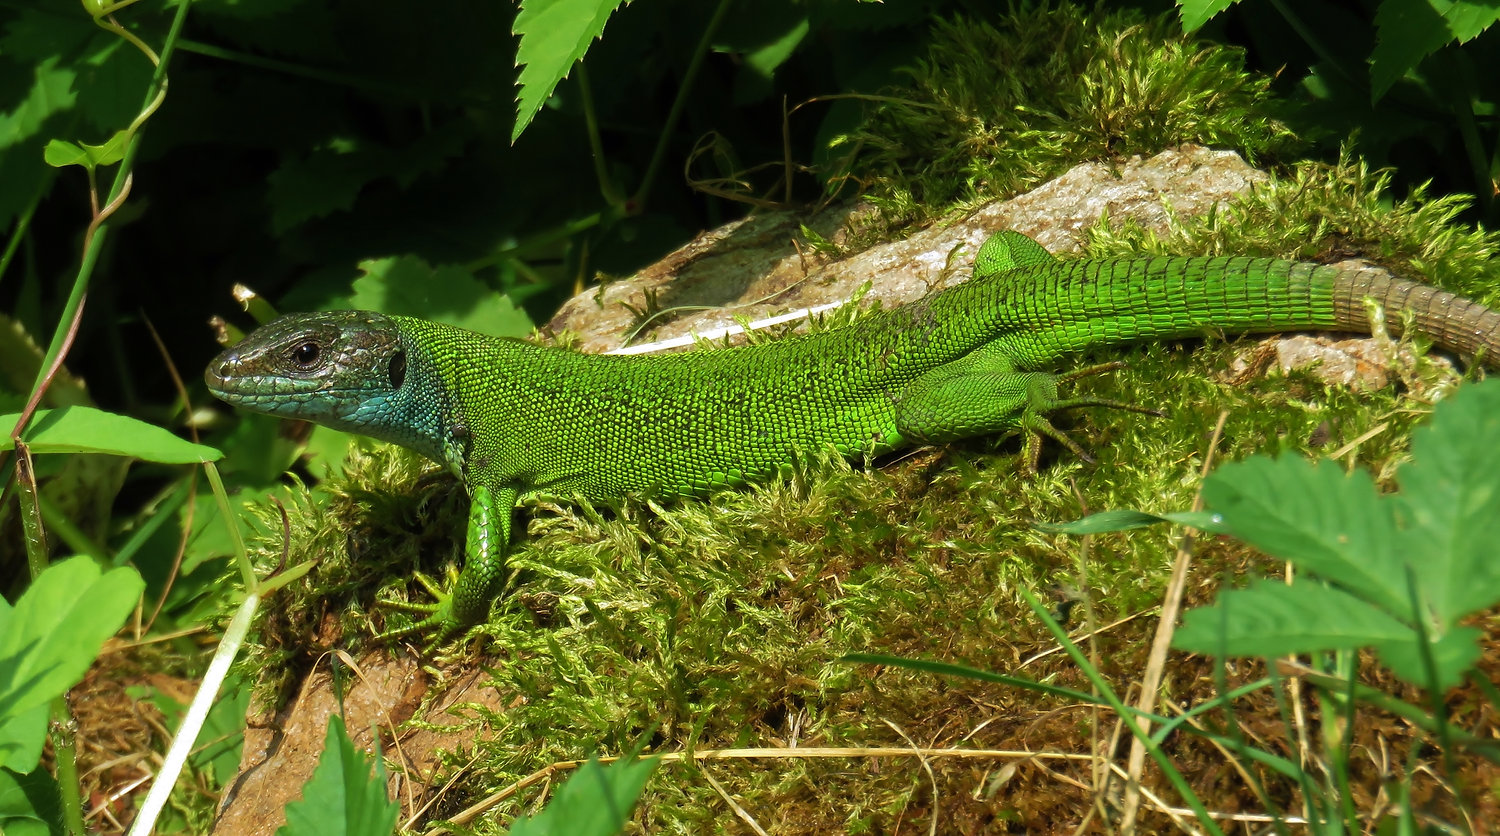 Western green lizard (lacerta bilineata) female, ticino 2015